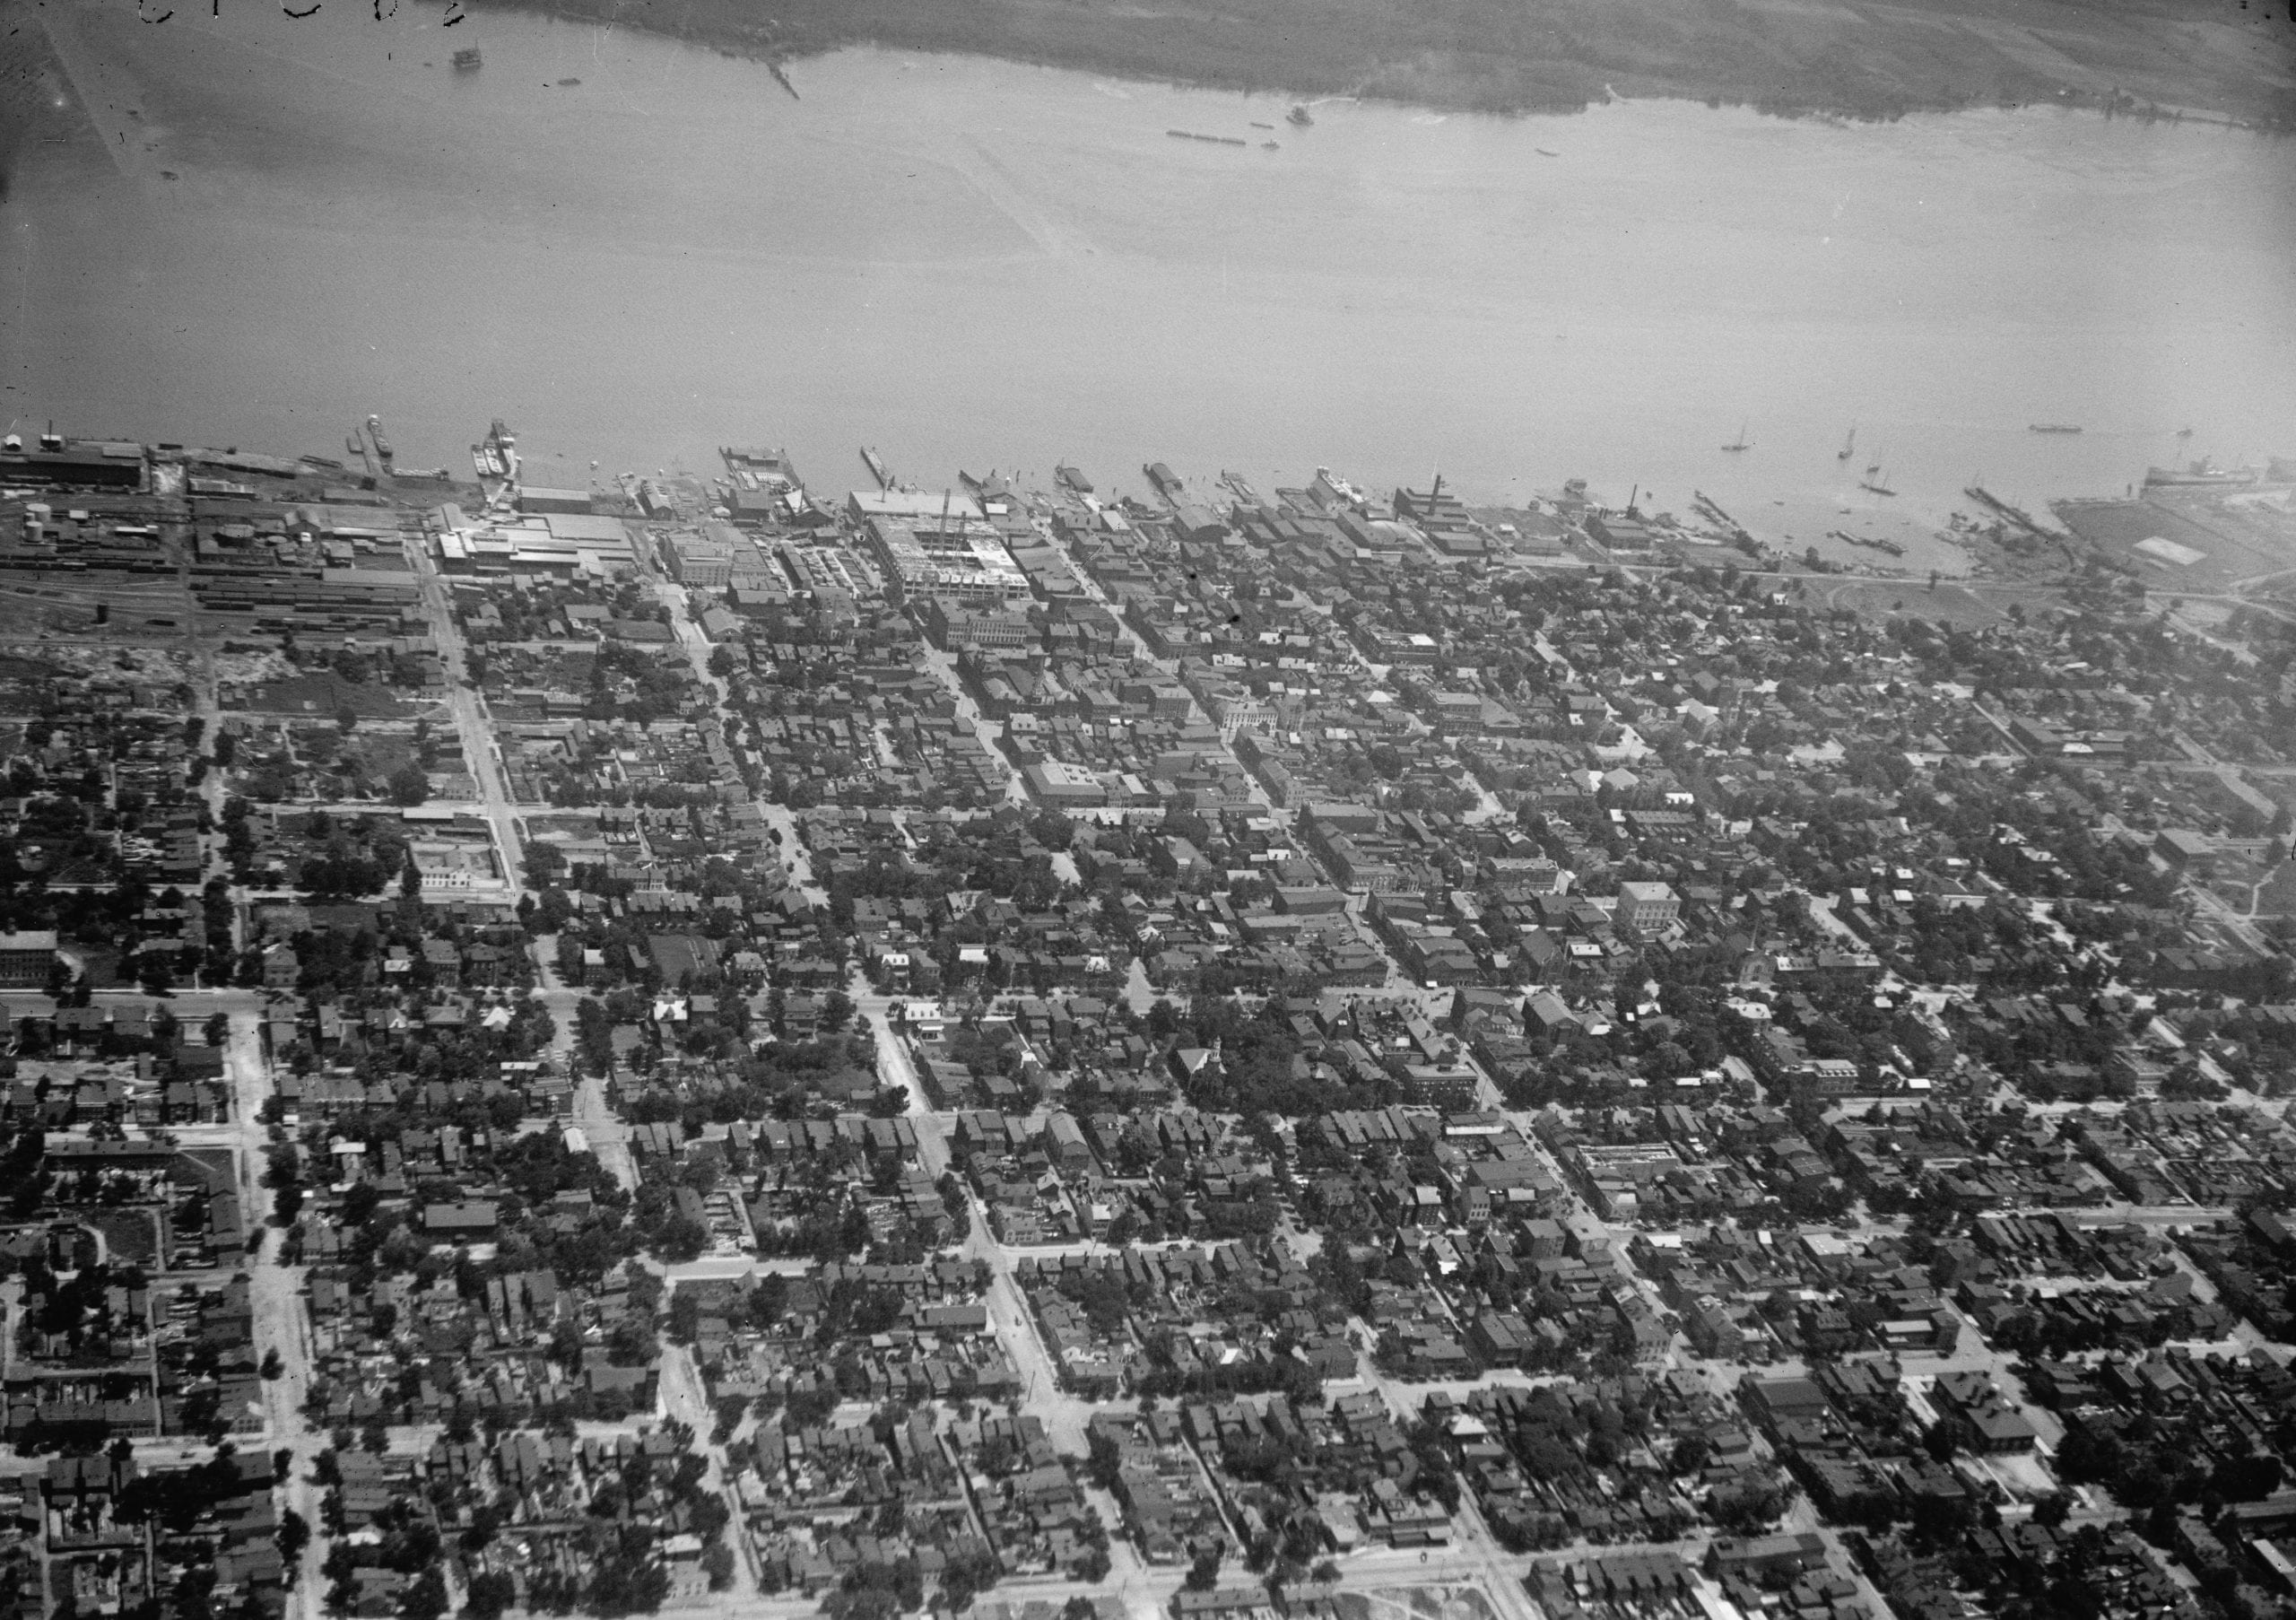 Alexandria Viewed From an Airplane in 1919